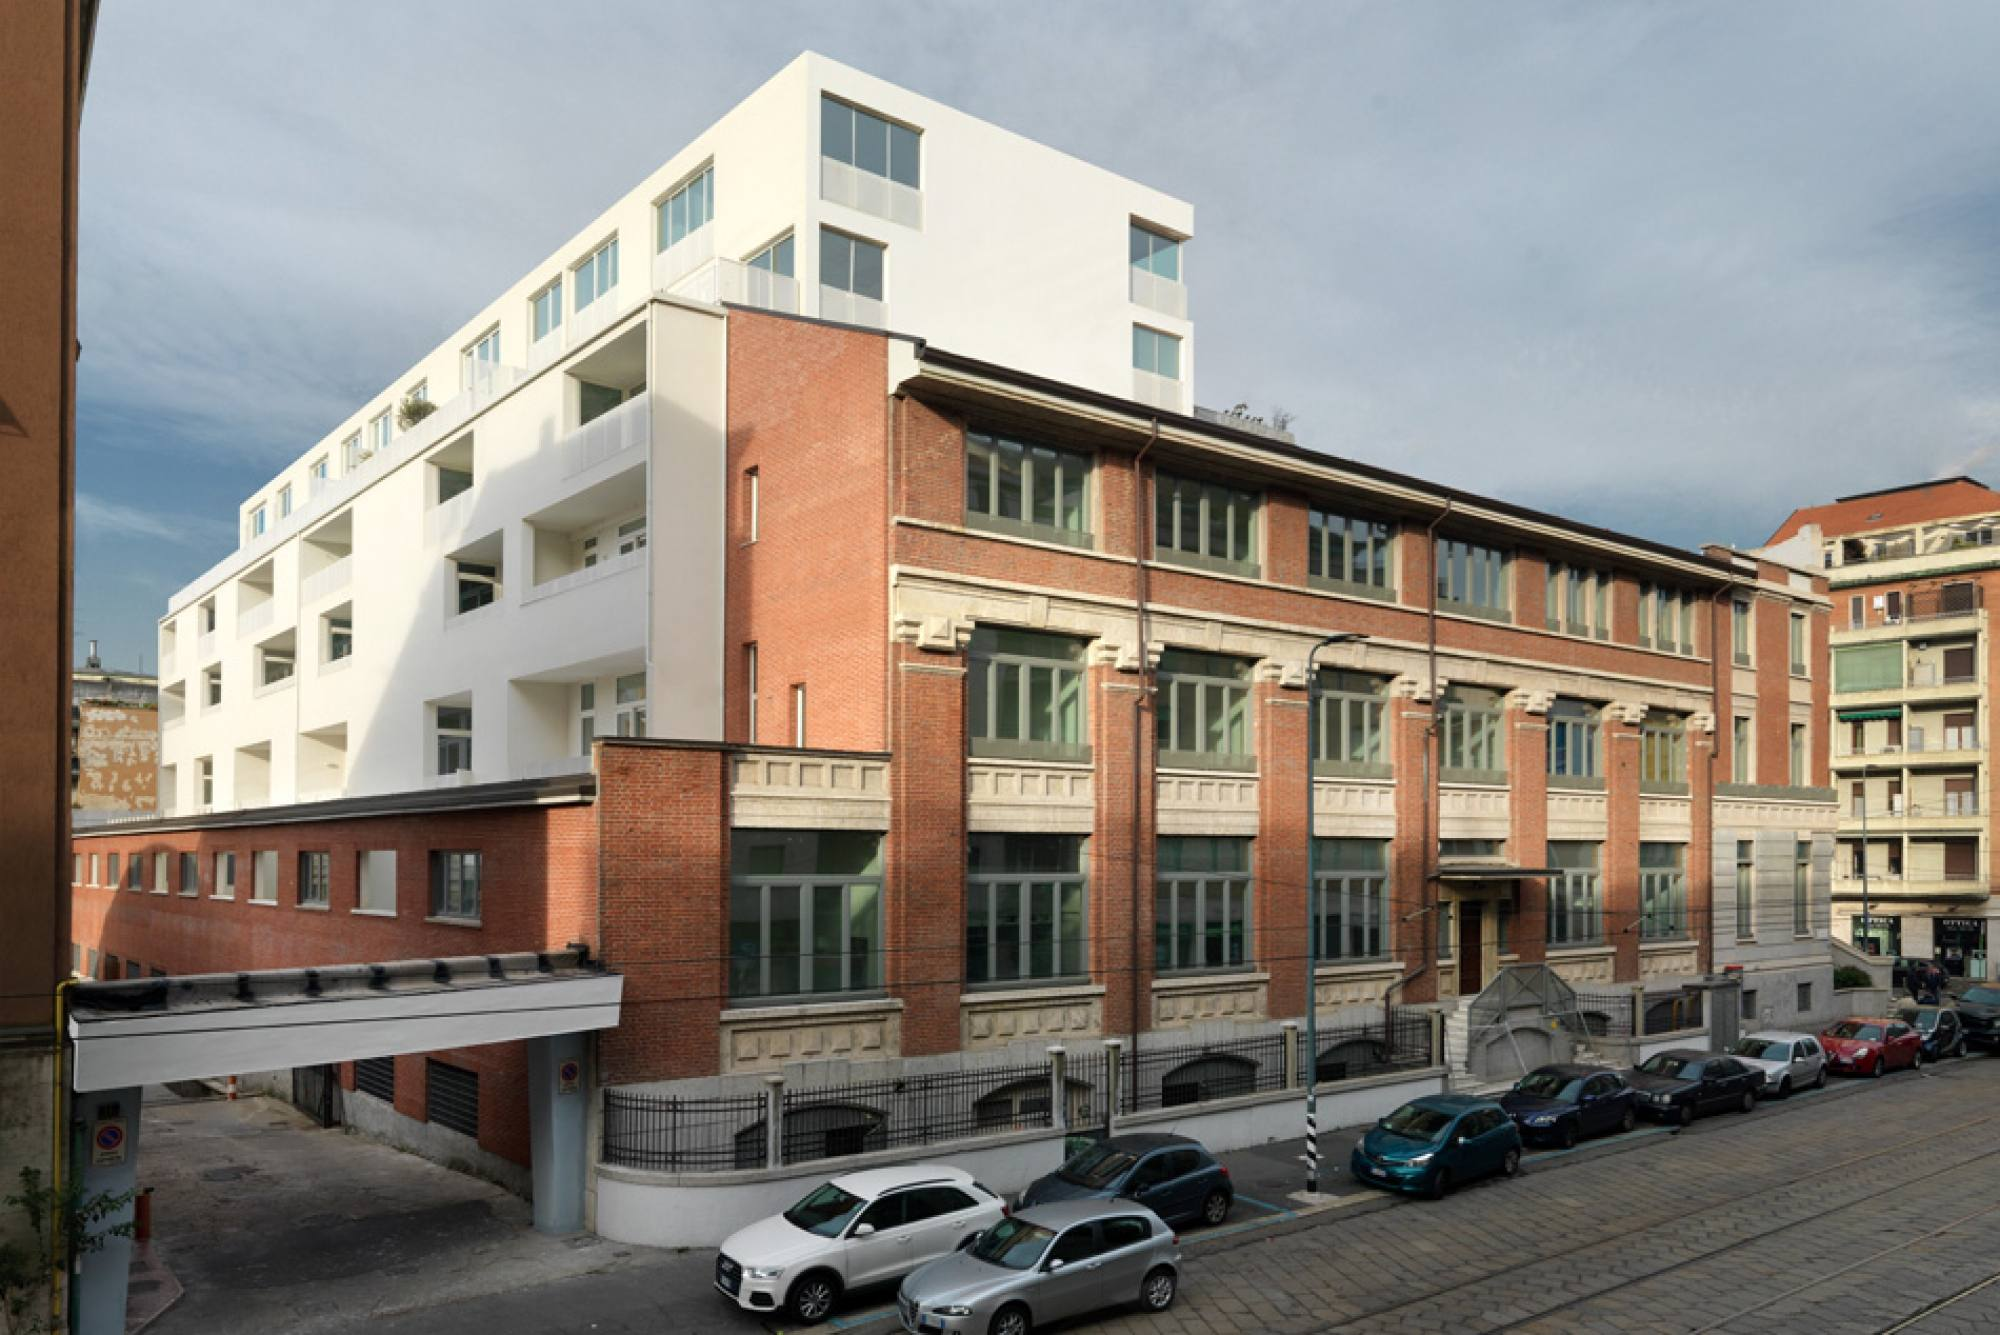 Designed by Piuarch, the housing unit in via Montegani, Milan, is now completed